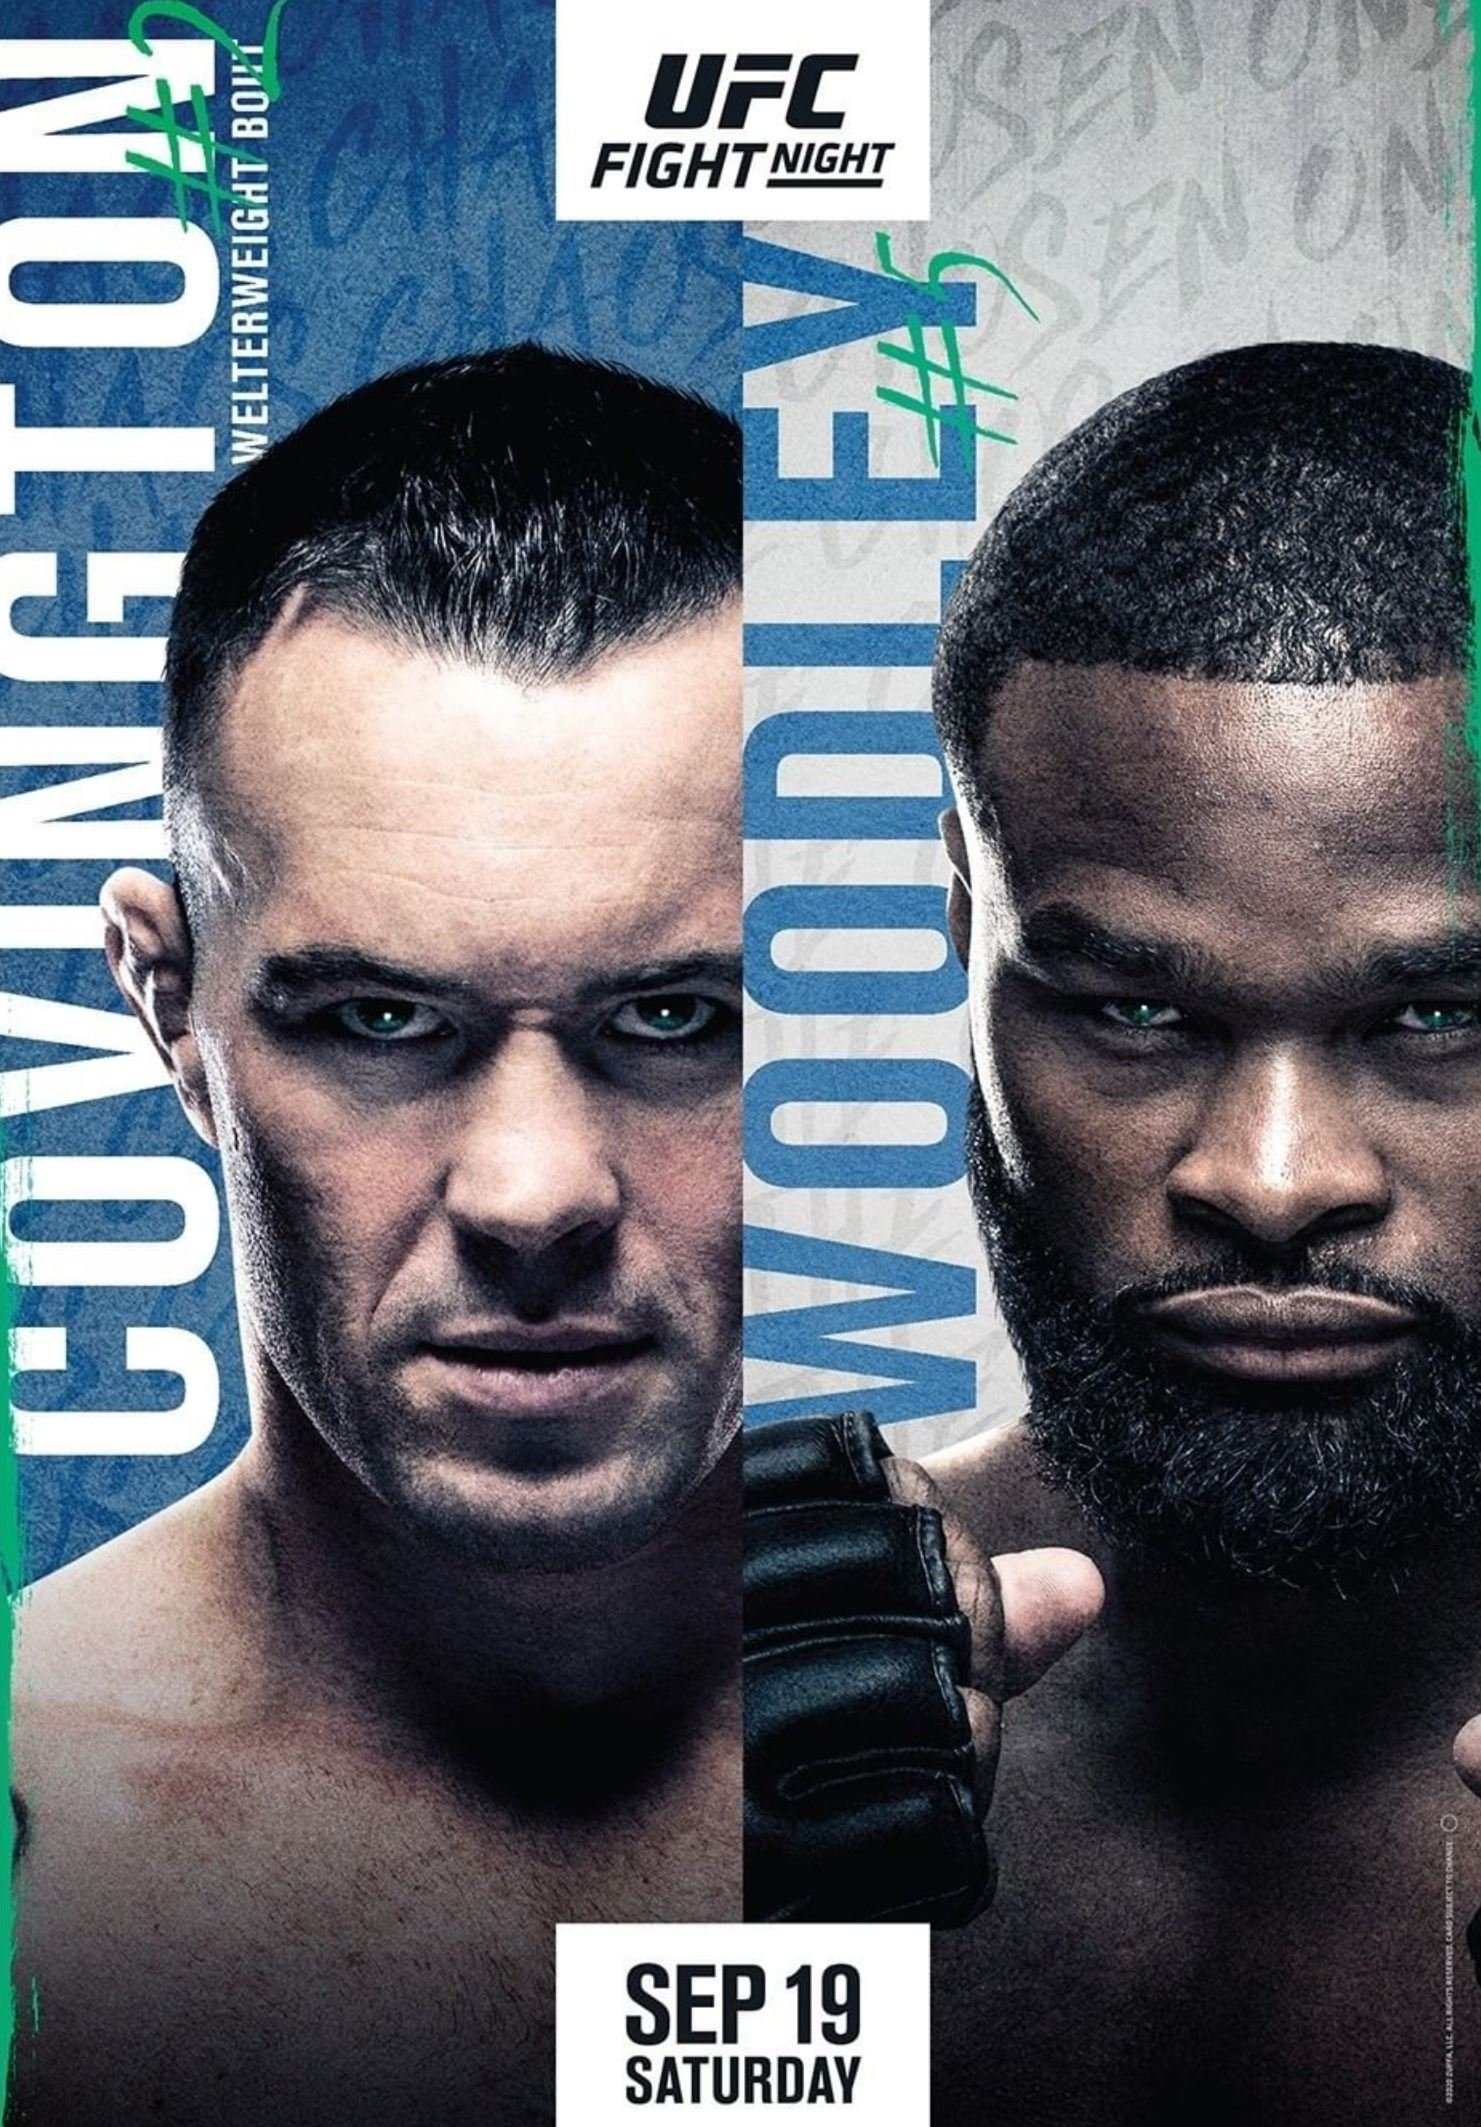 LOOK: UFC Fight Night 178 Poster for 'Covington vs. Woodley' Released